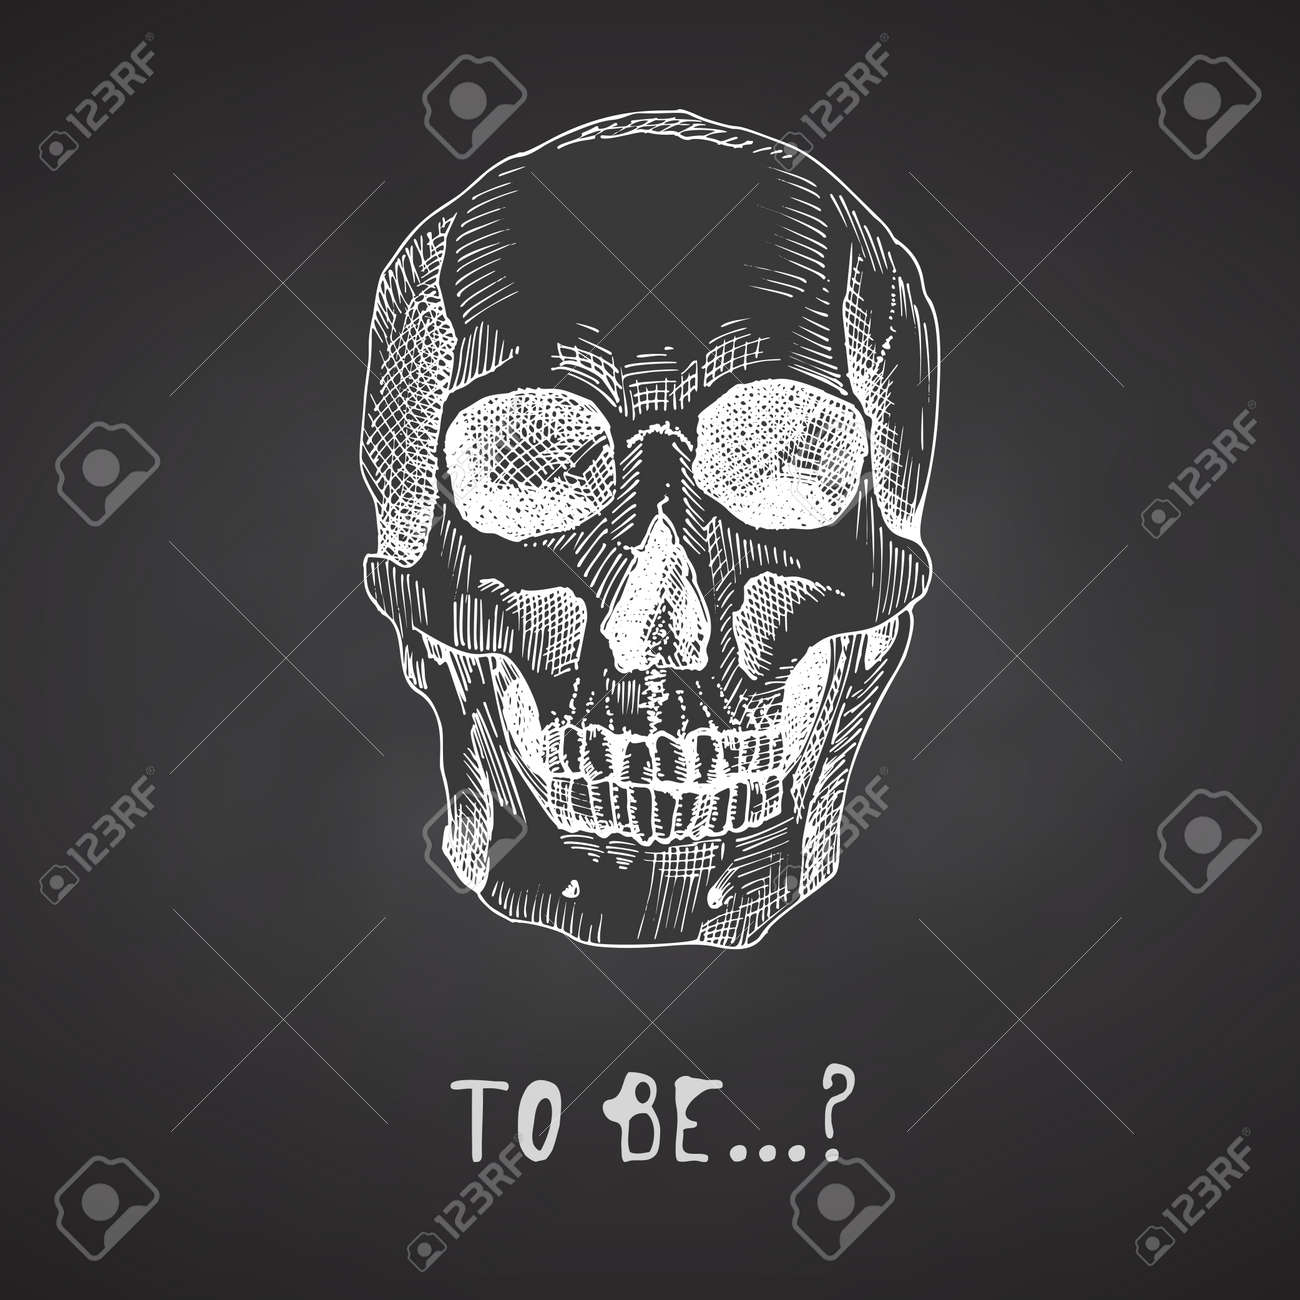 Hand drawn sketch human skull. Chalk graphic art isolated on calkboard background. Profile view of head. Engraving style. Vector - 160989619